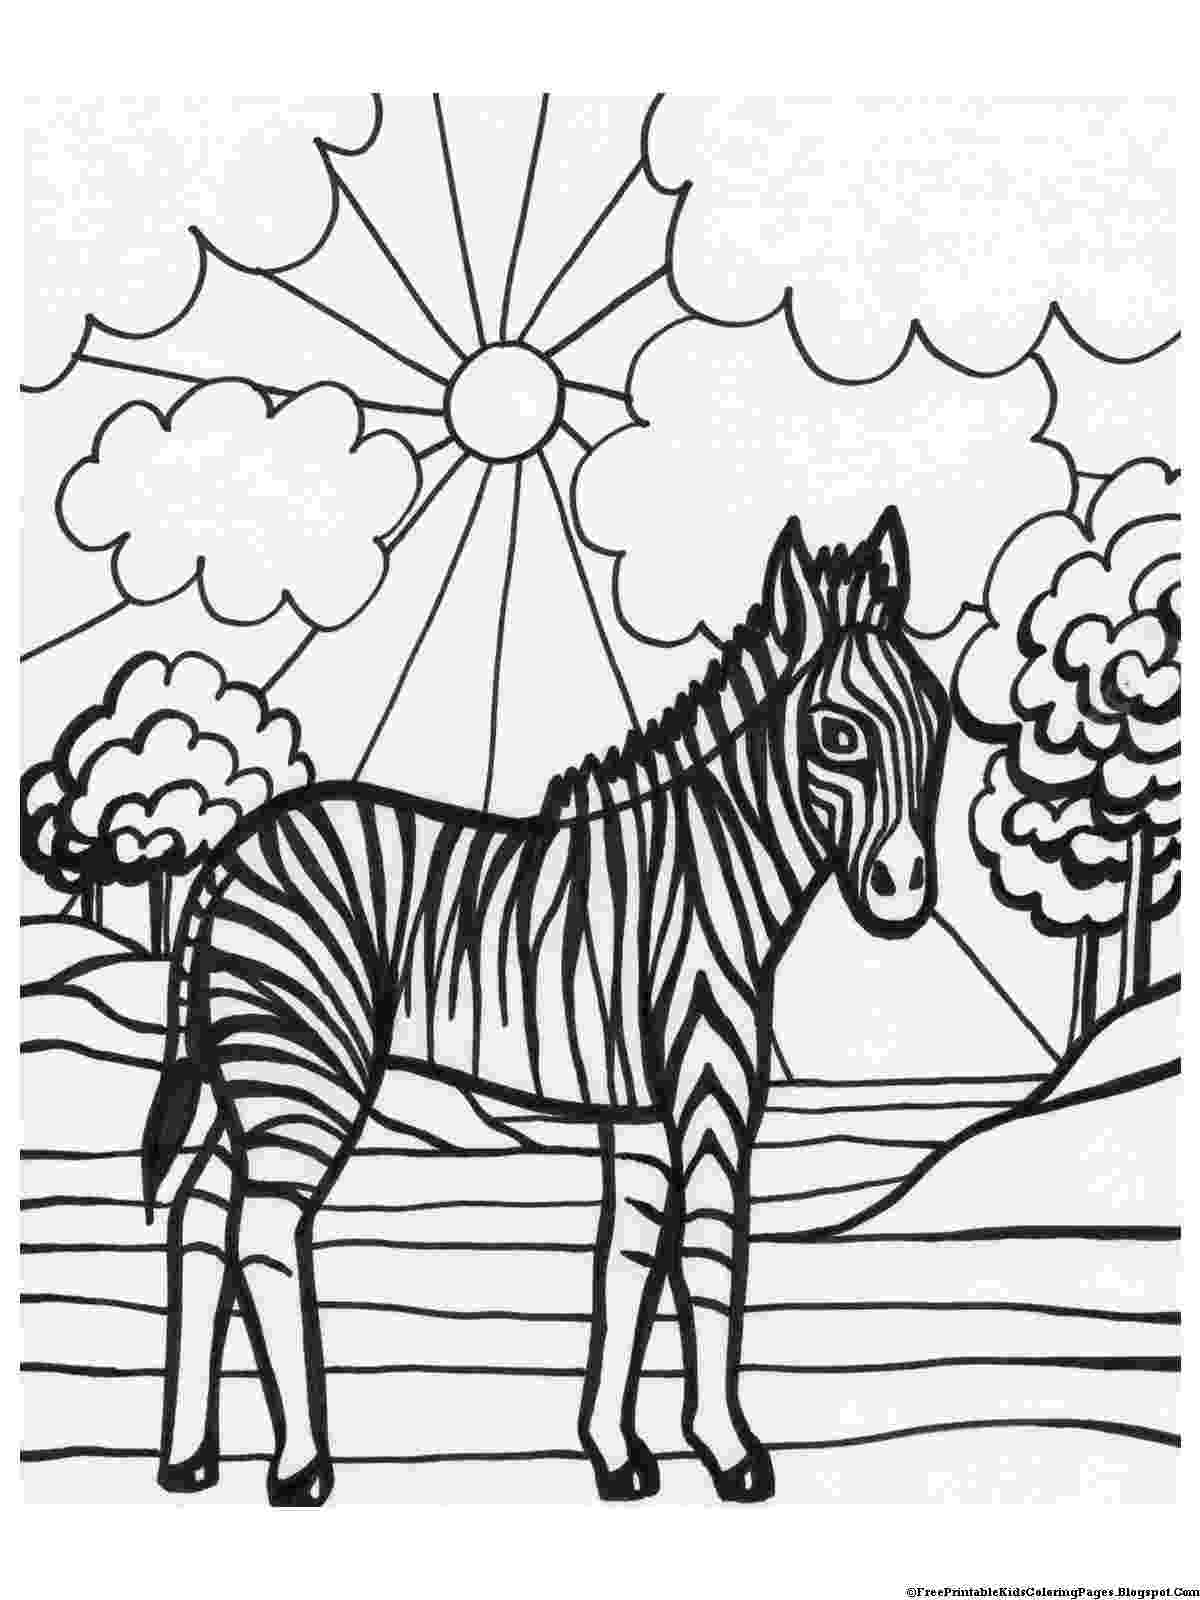 coloring pigs fun coloring pages frozen coloring pages pigs coloring